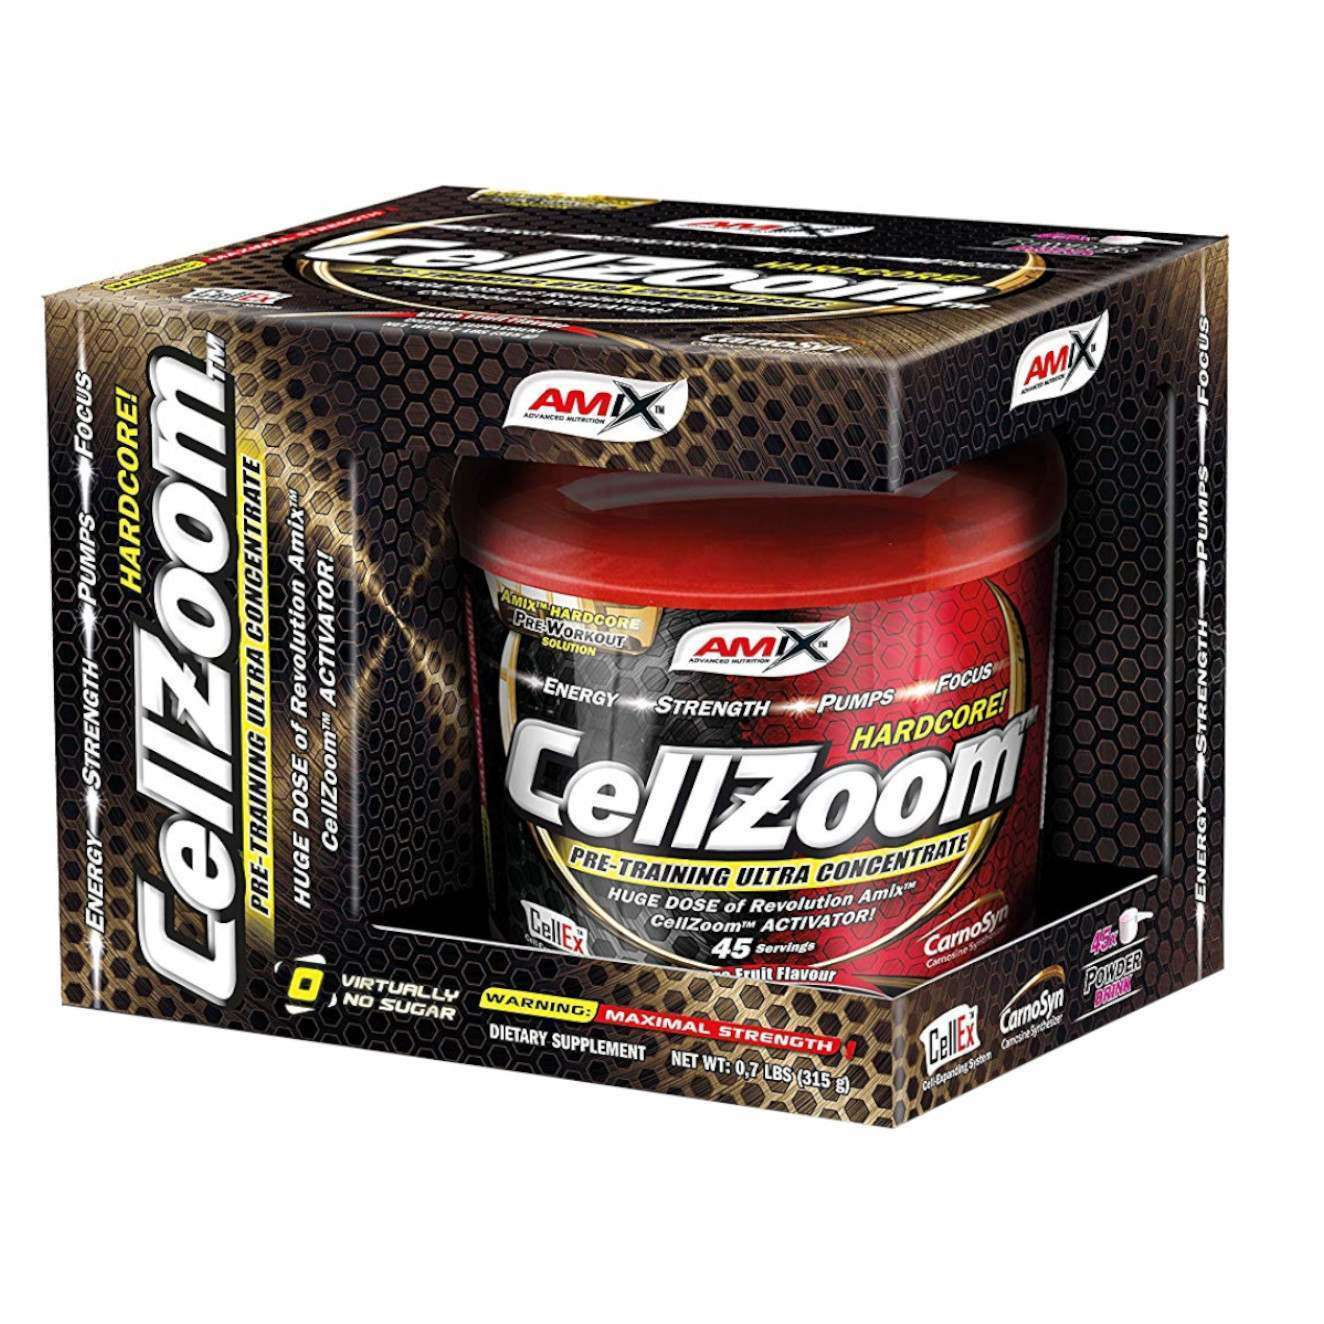 CELLZOOM - 315g